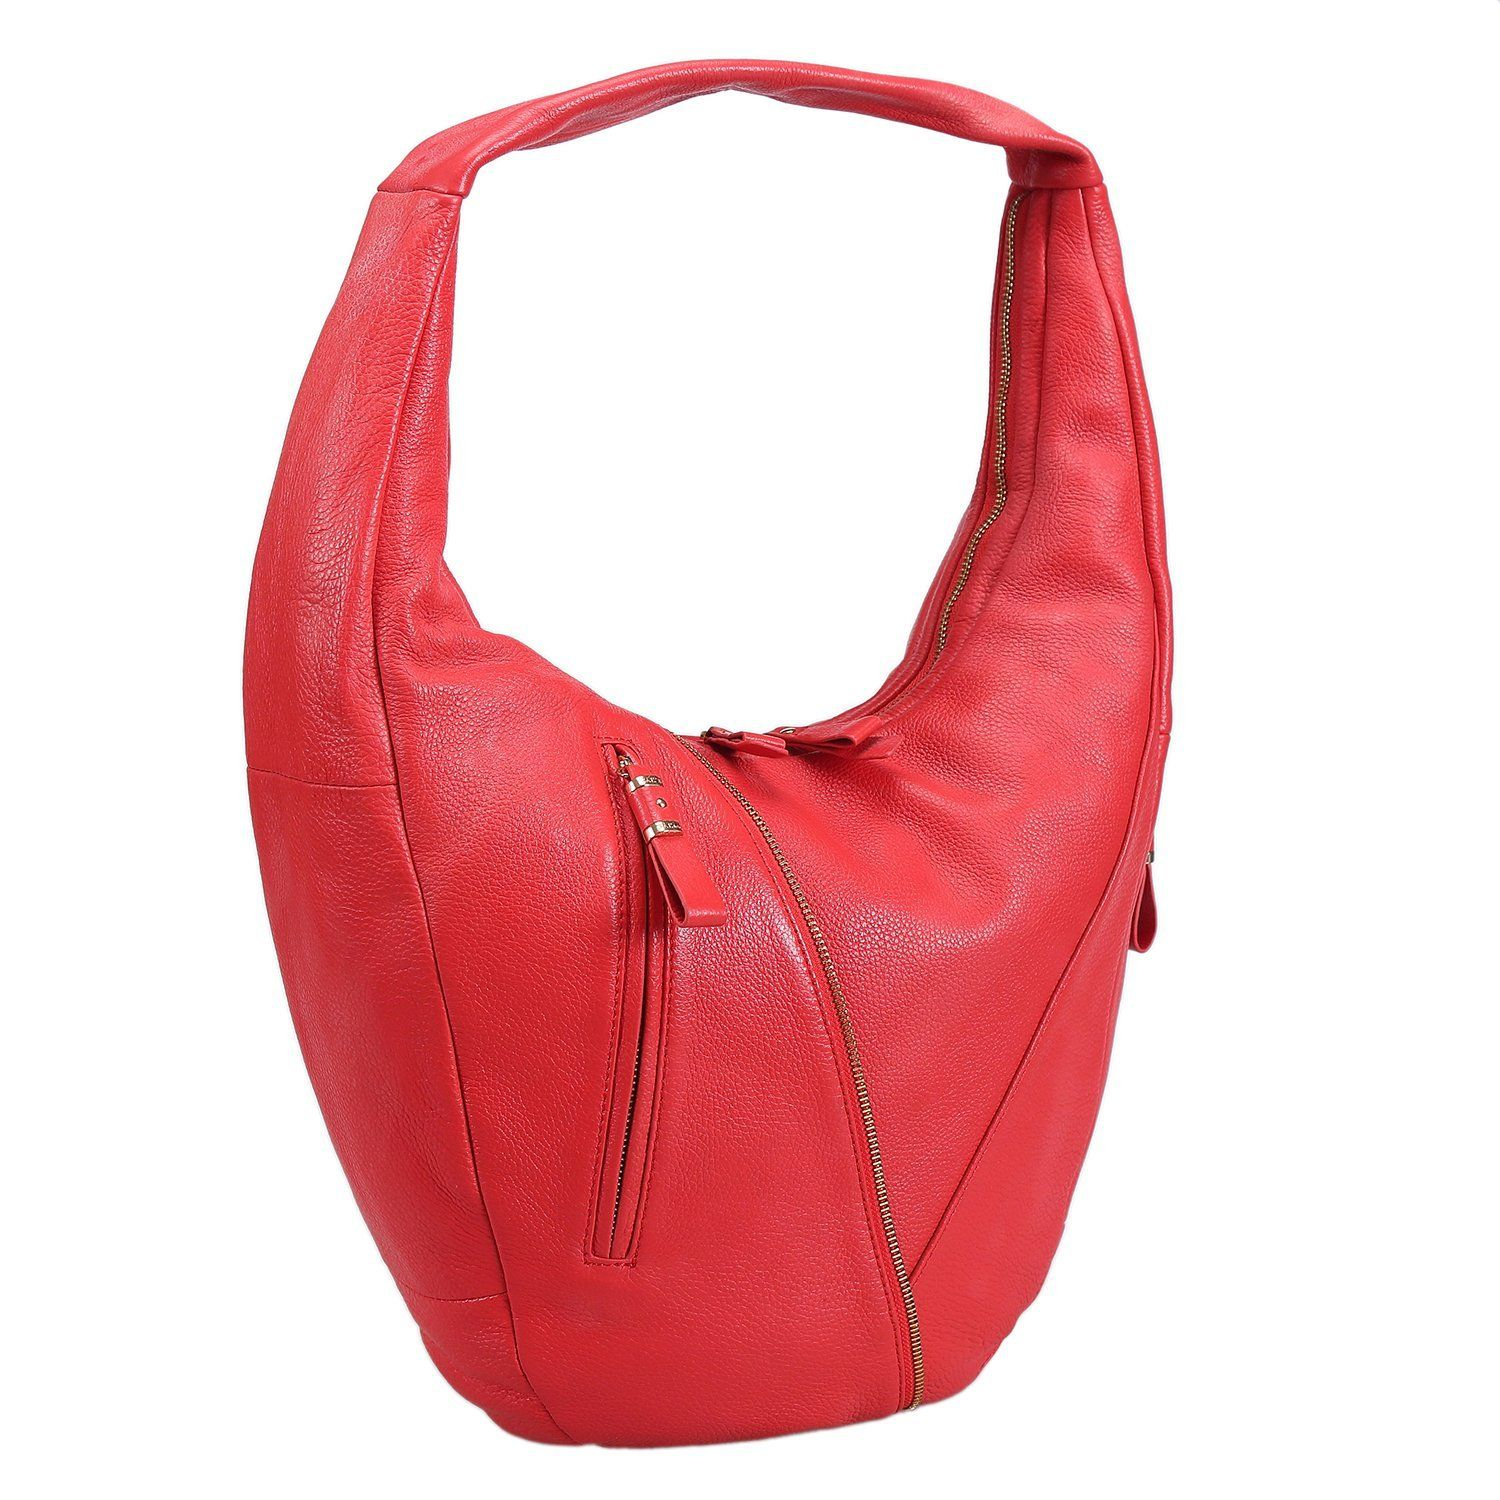 Women S Soft Leather Hobo Style Handbags Large Shoulder Bags Vintage Purses